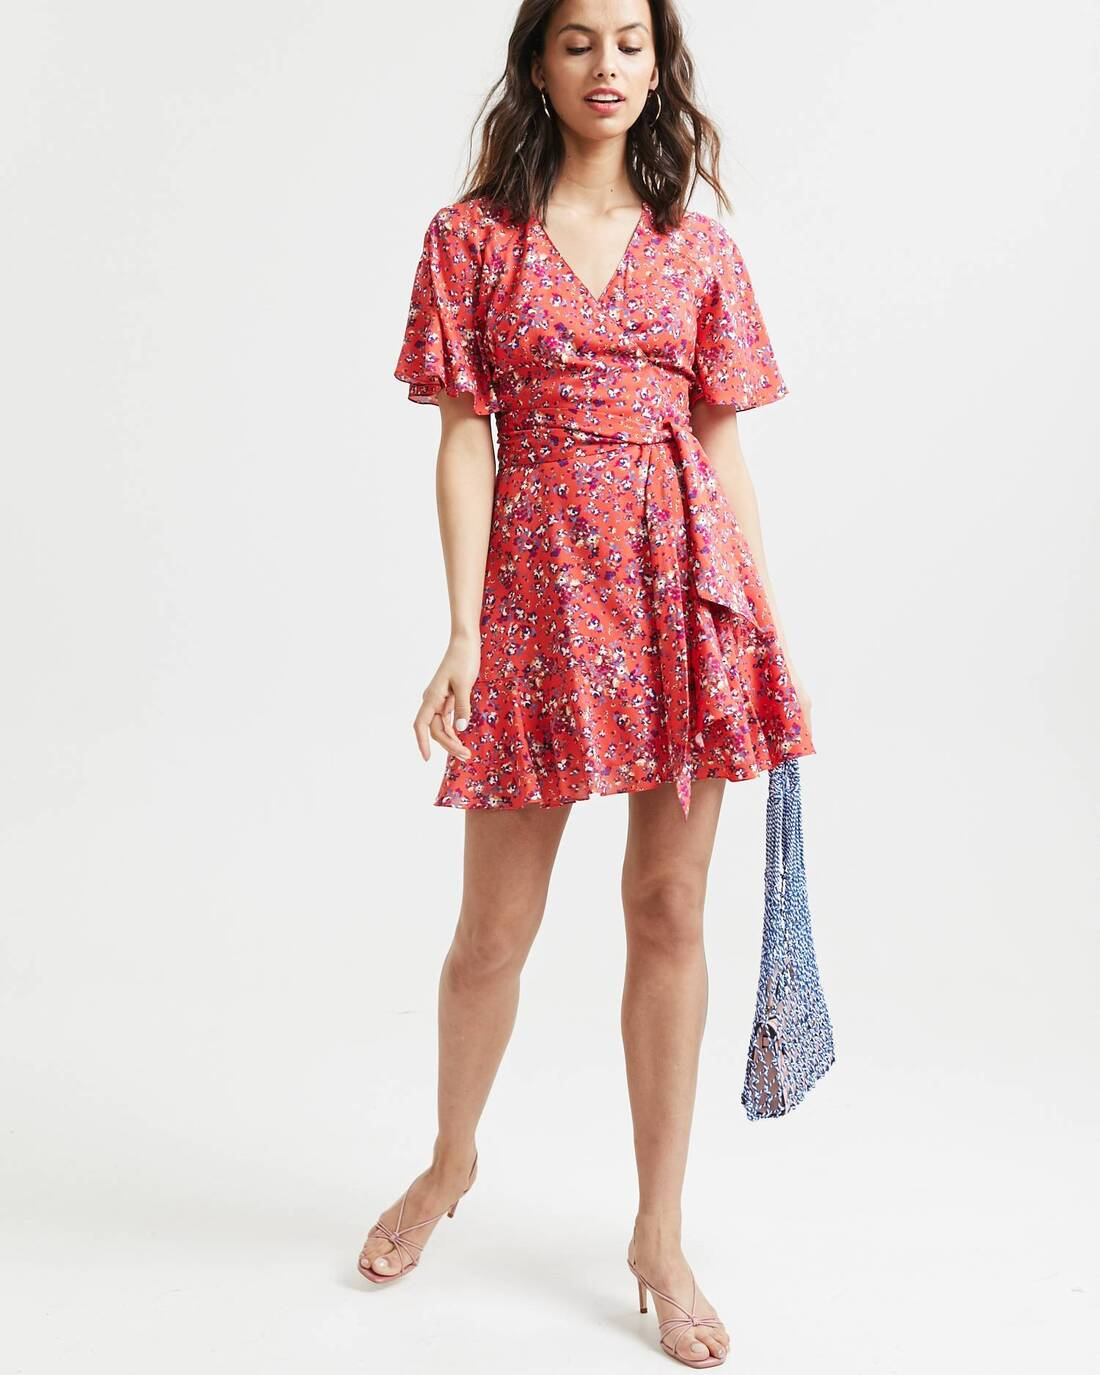 Printed mini dress with ruffles